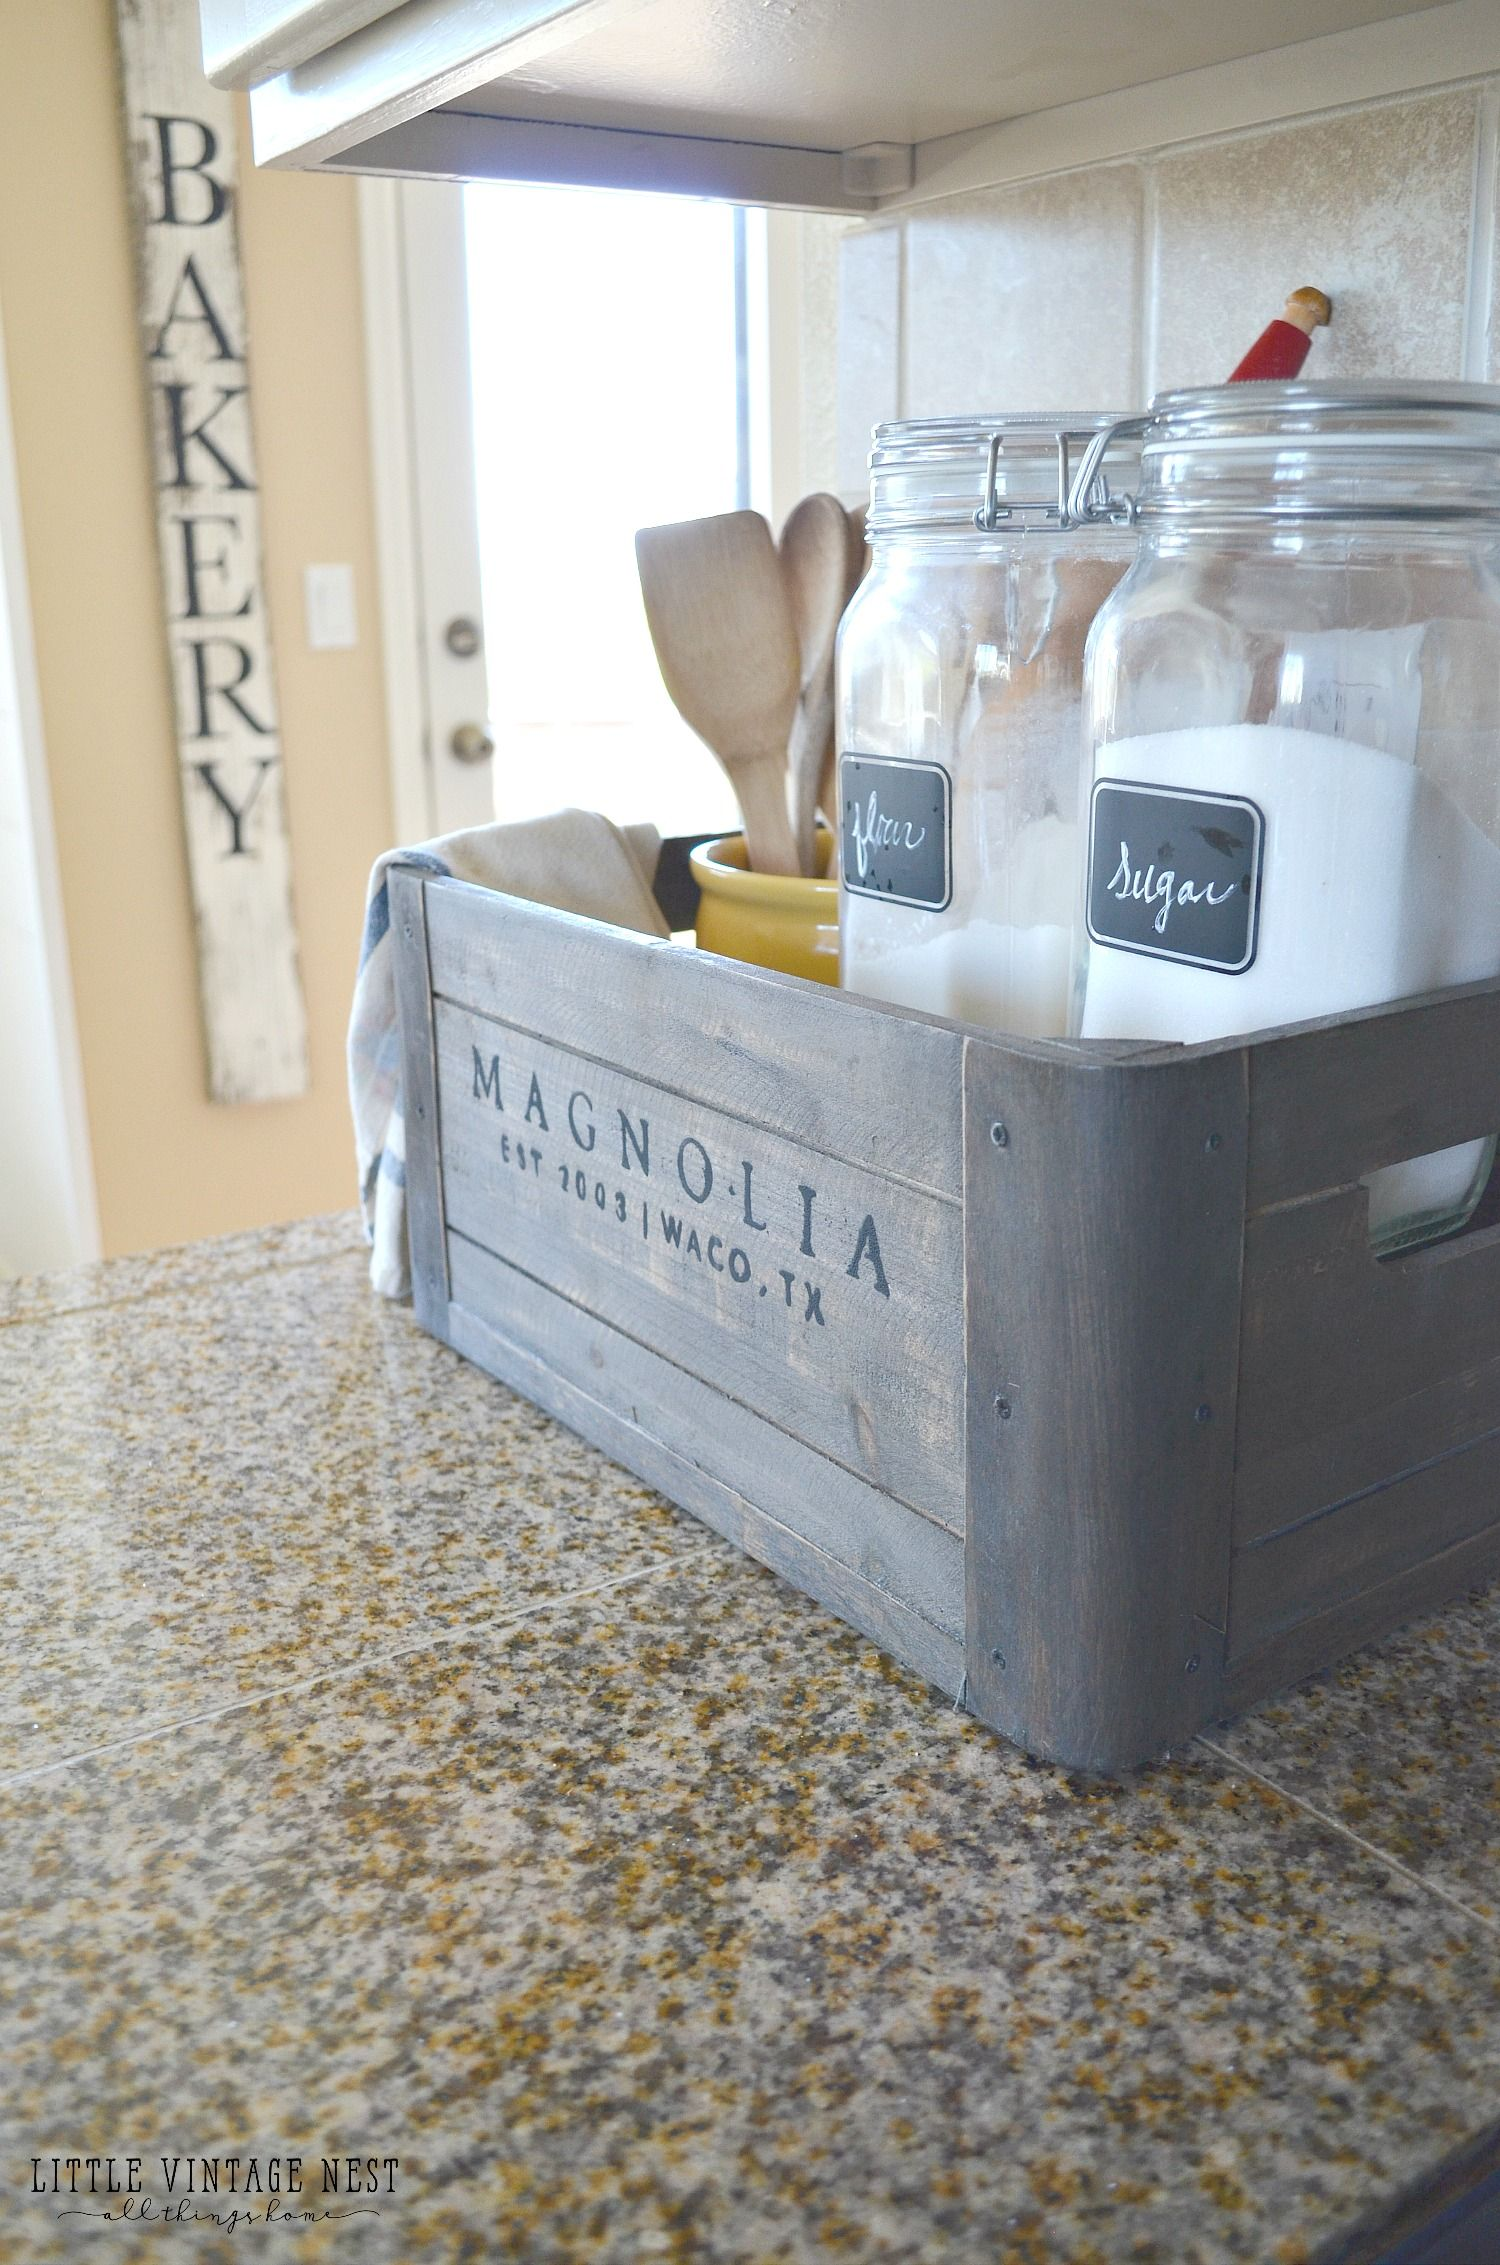 5 Ways to Style a Wooden Crate | DIY home decor | Pinterest ...